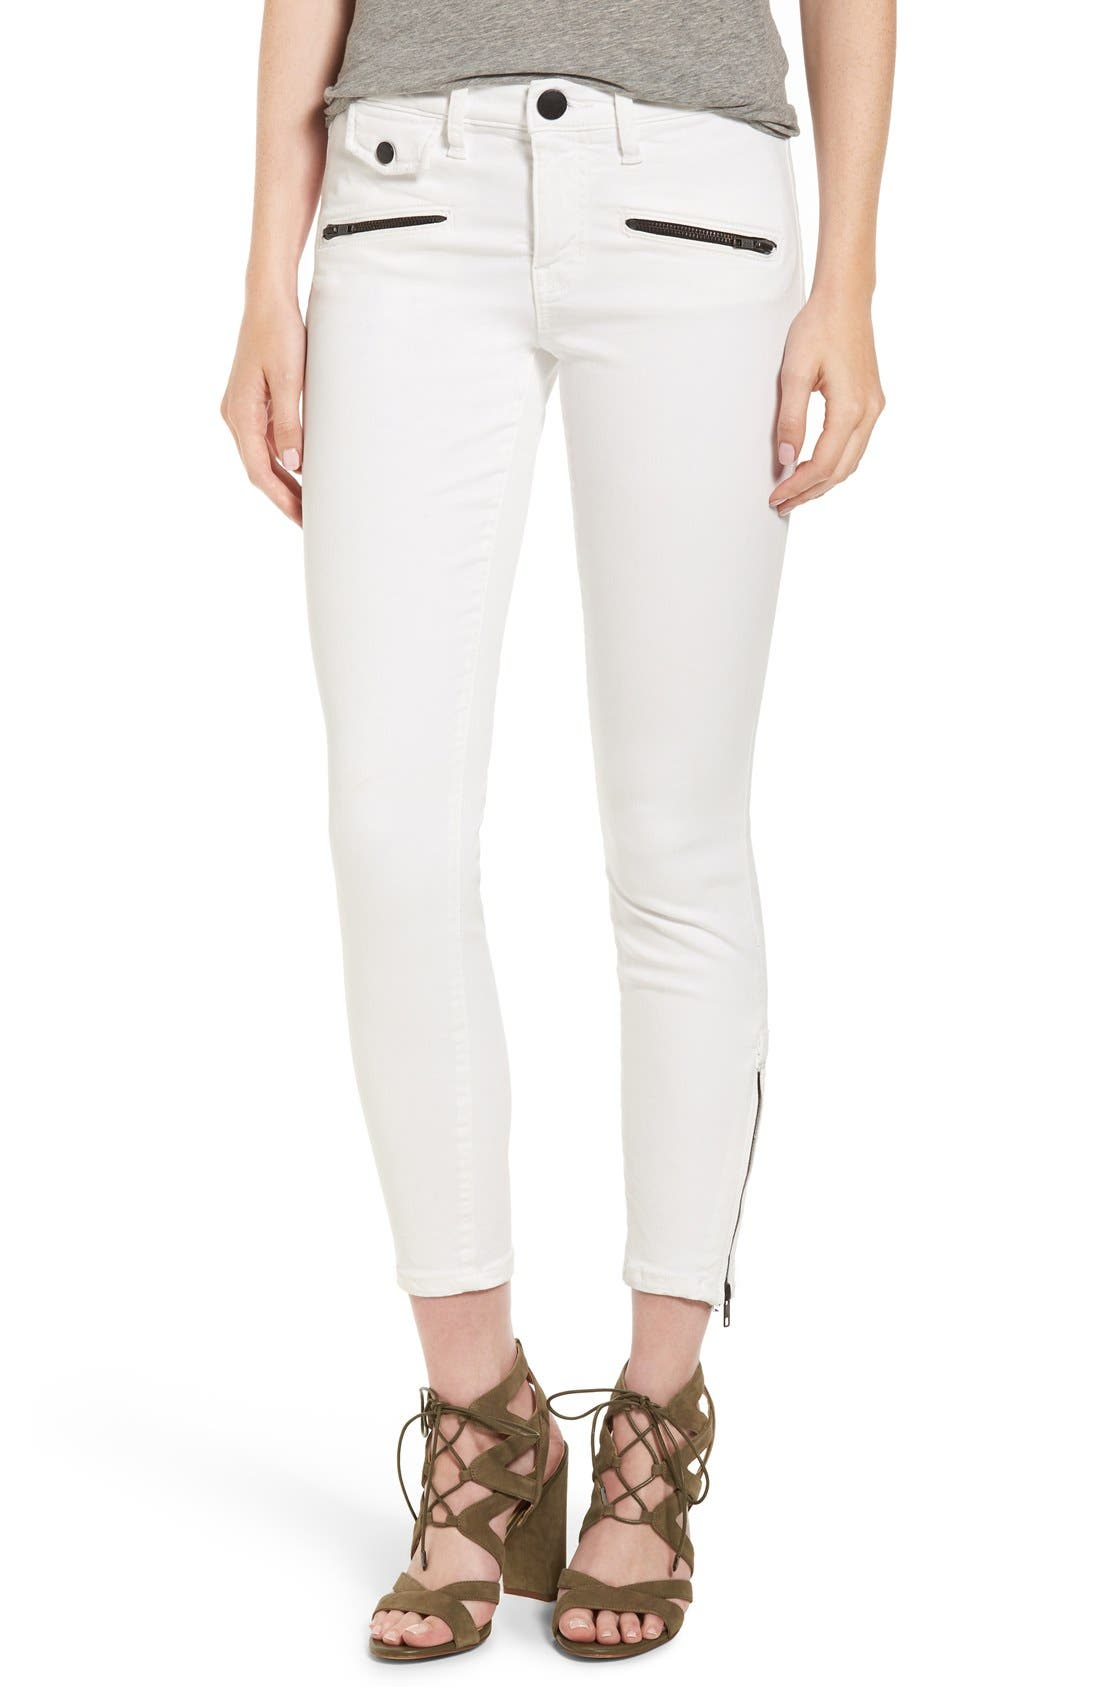 Alternate Image 1 Selected - Current/Elliott 'The Zip Moto' Ankle Skinny Jeans (Dirty White Noise)